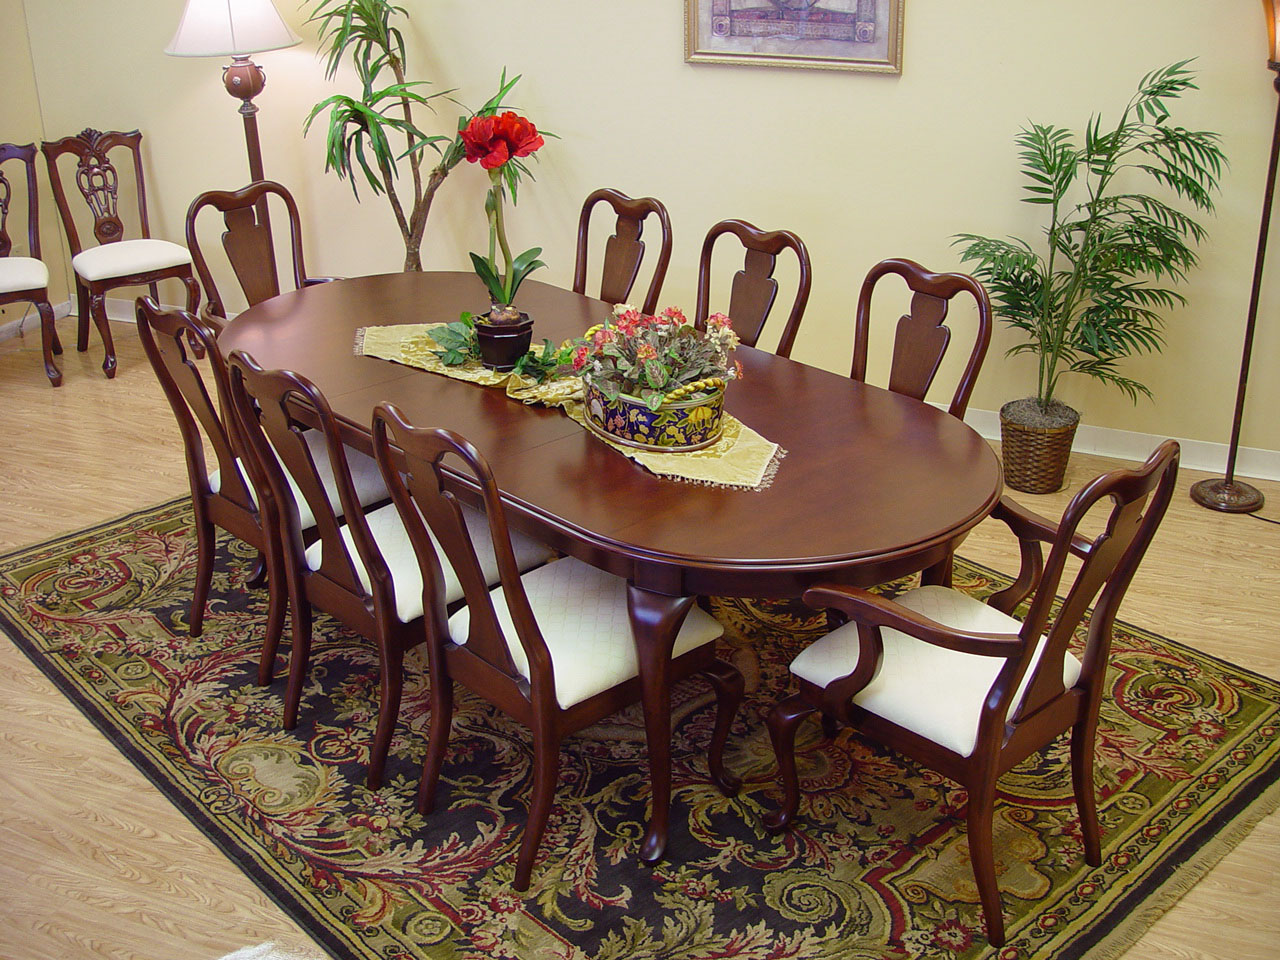 Queen Anne Chair And Dining Room Table Furniture (View 5 of 11)